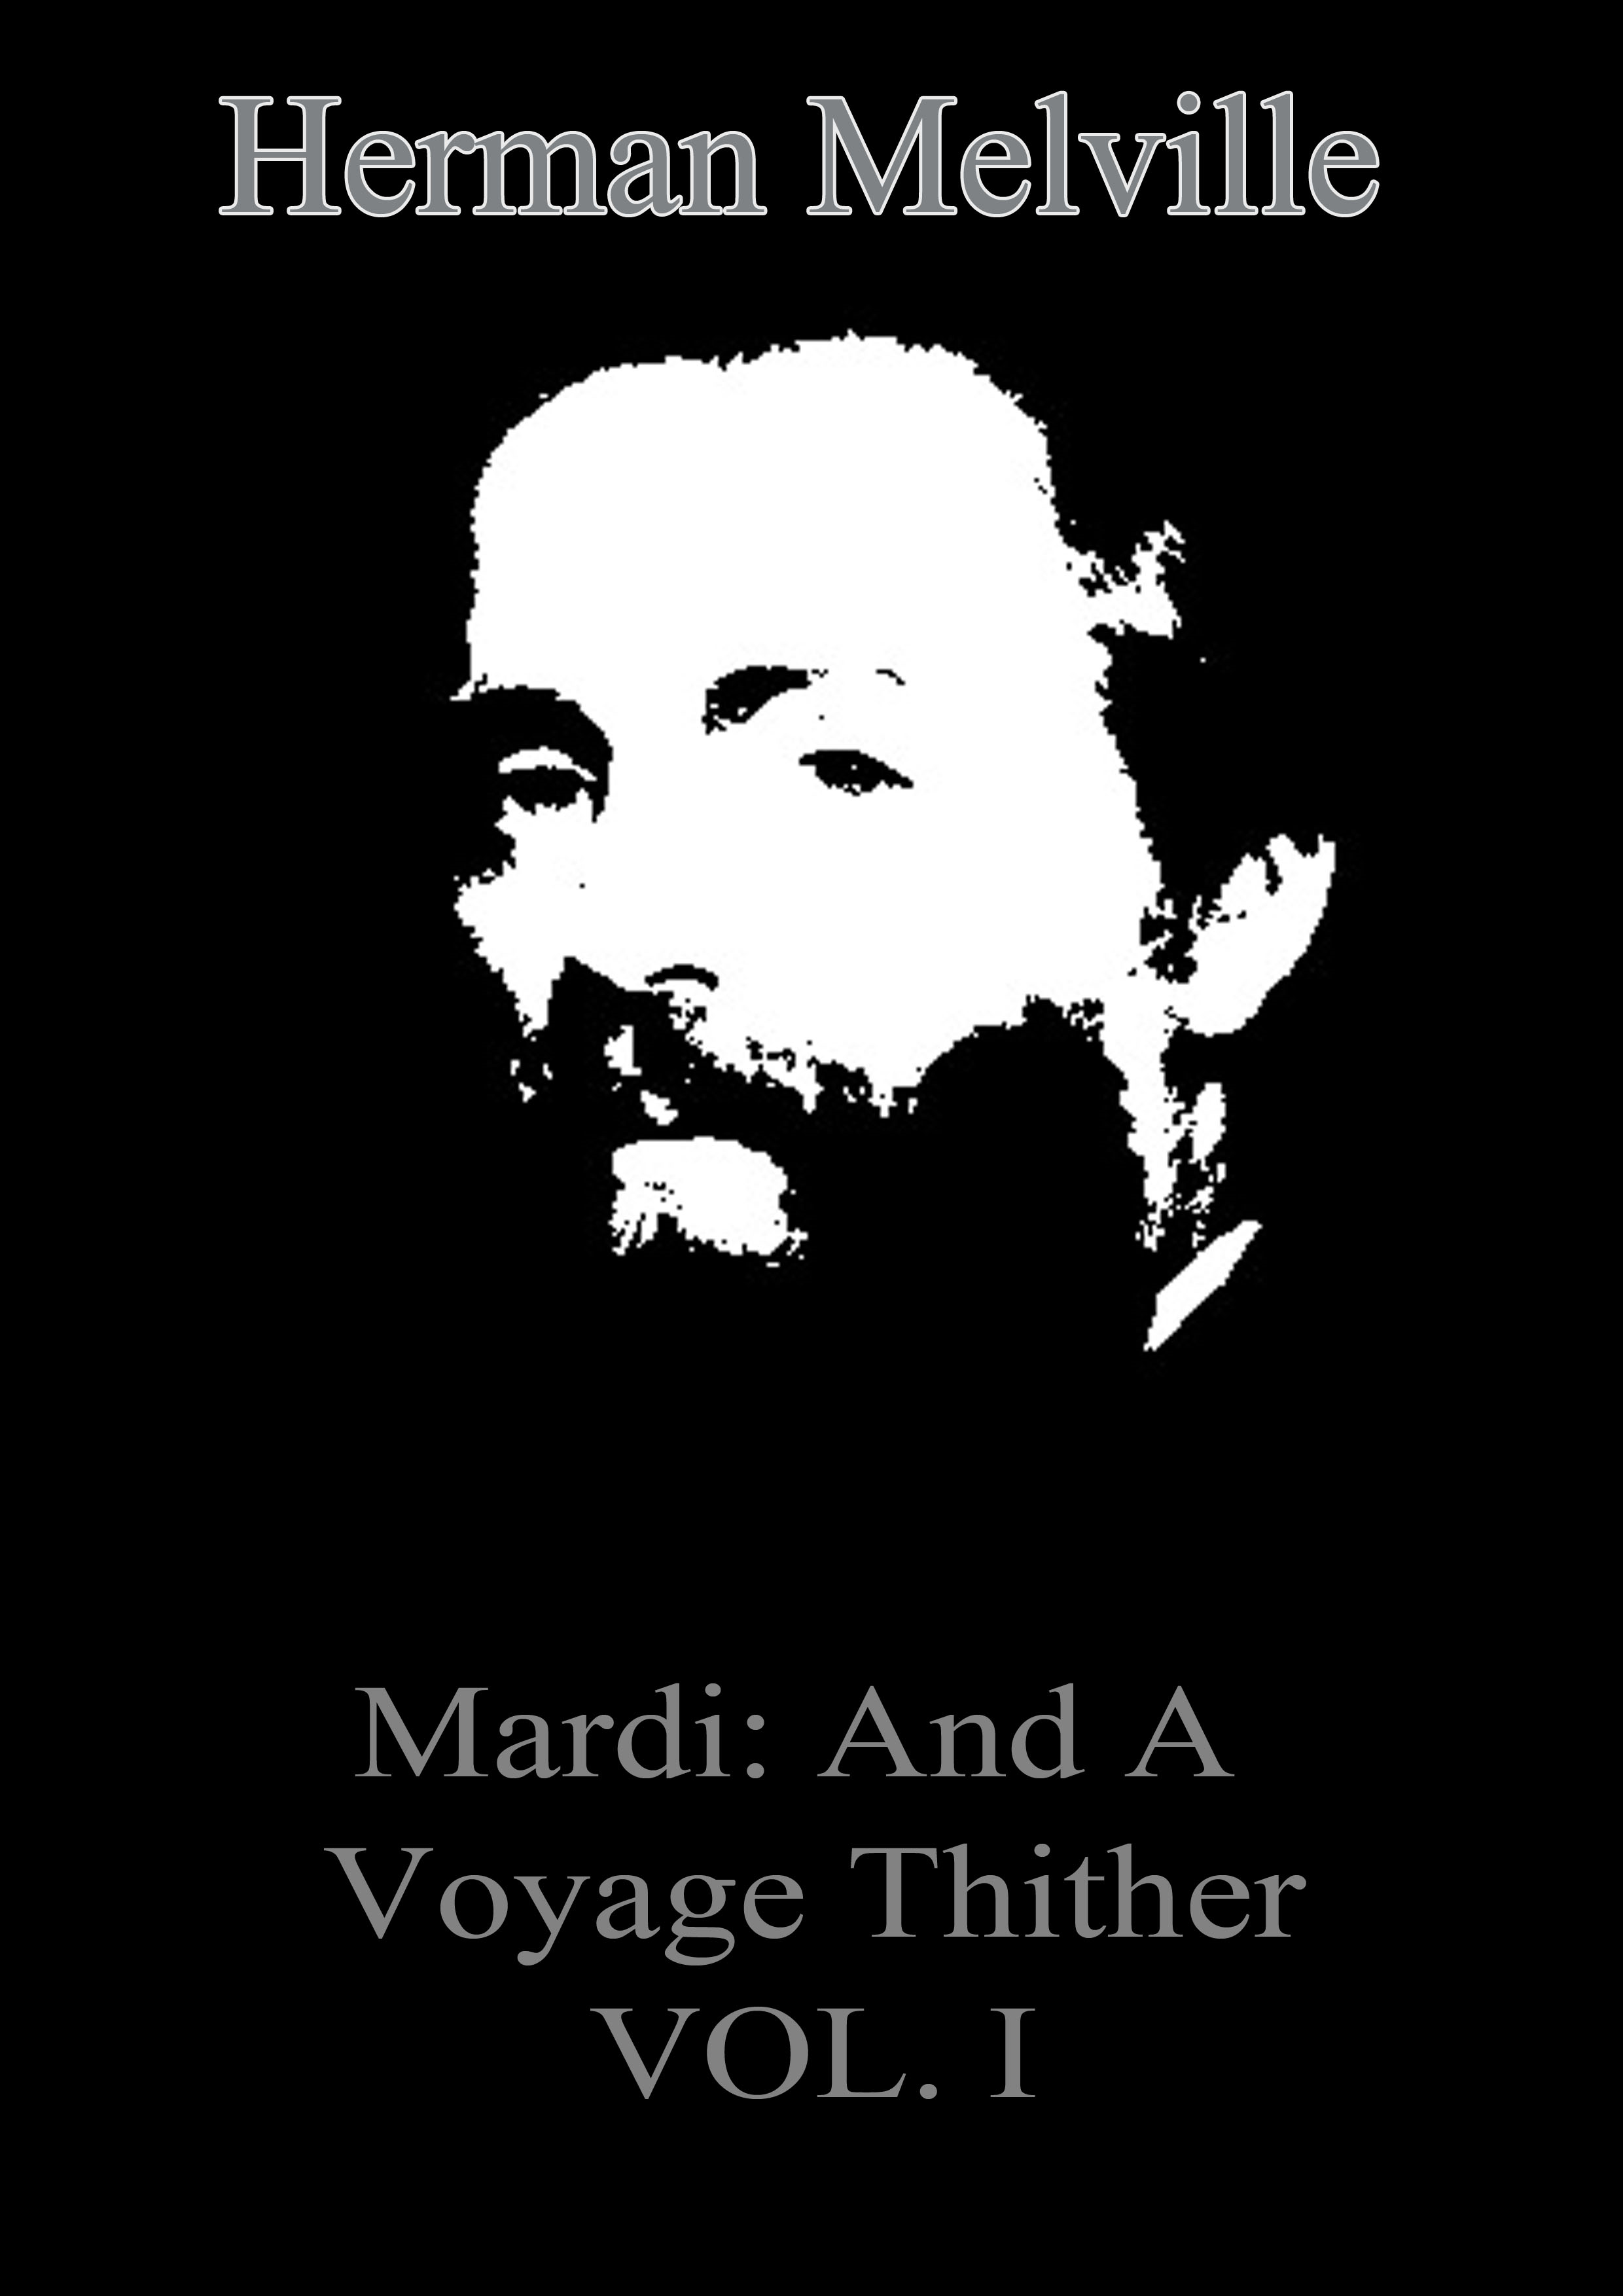 Herman melville - Mardi:  And A Voyage Thither VOL. I